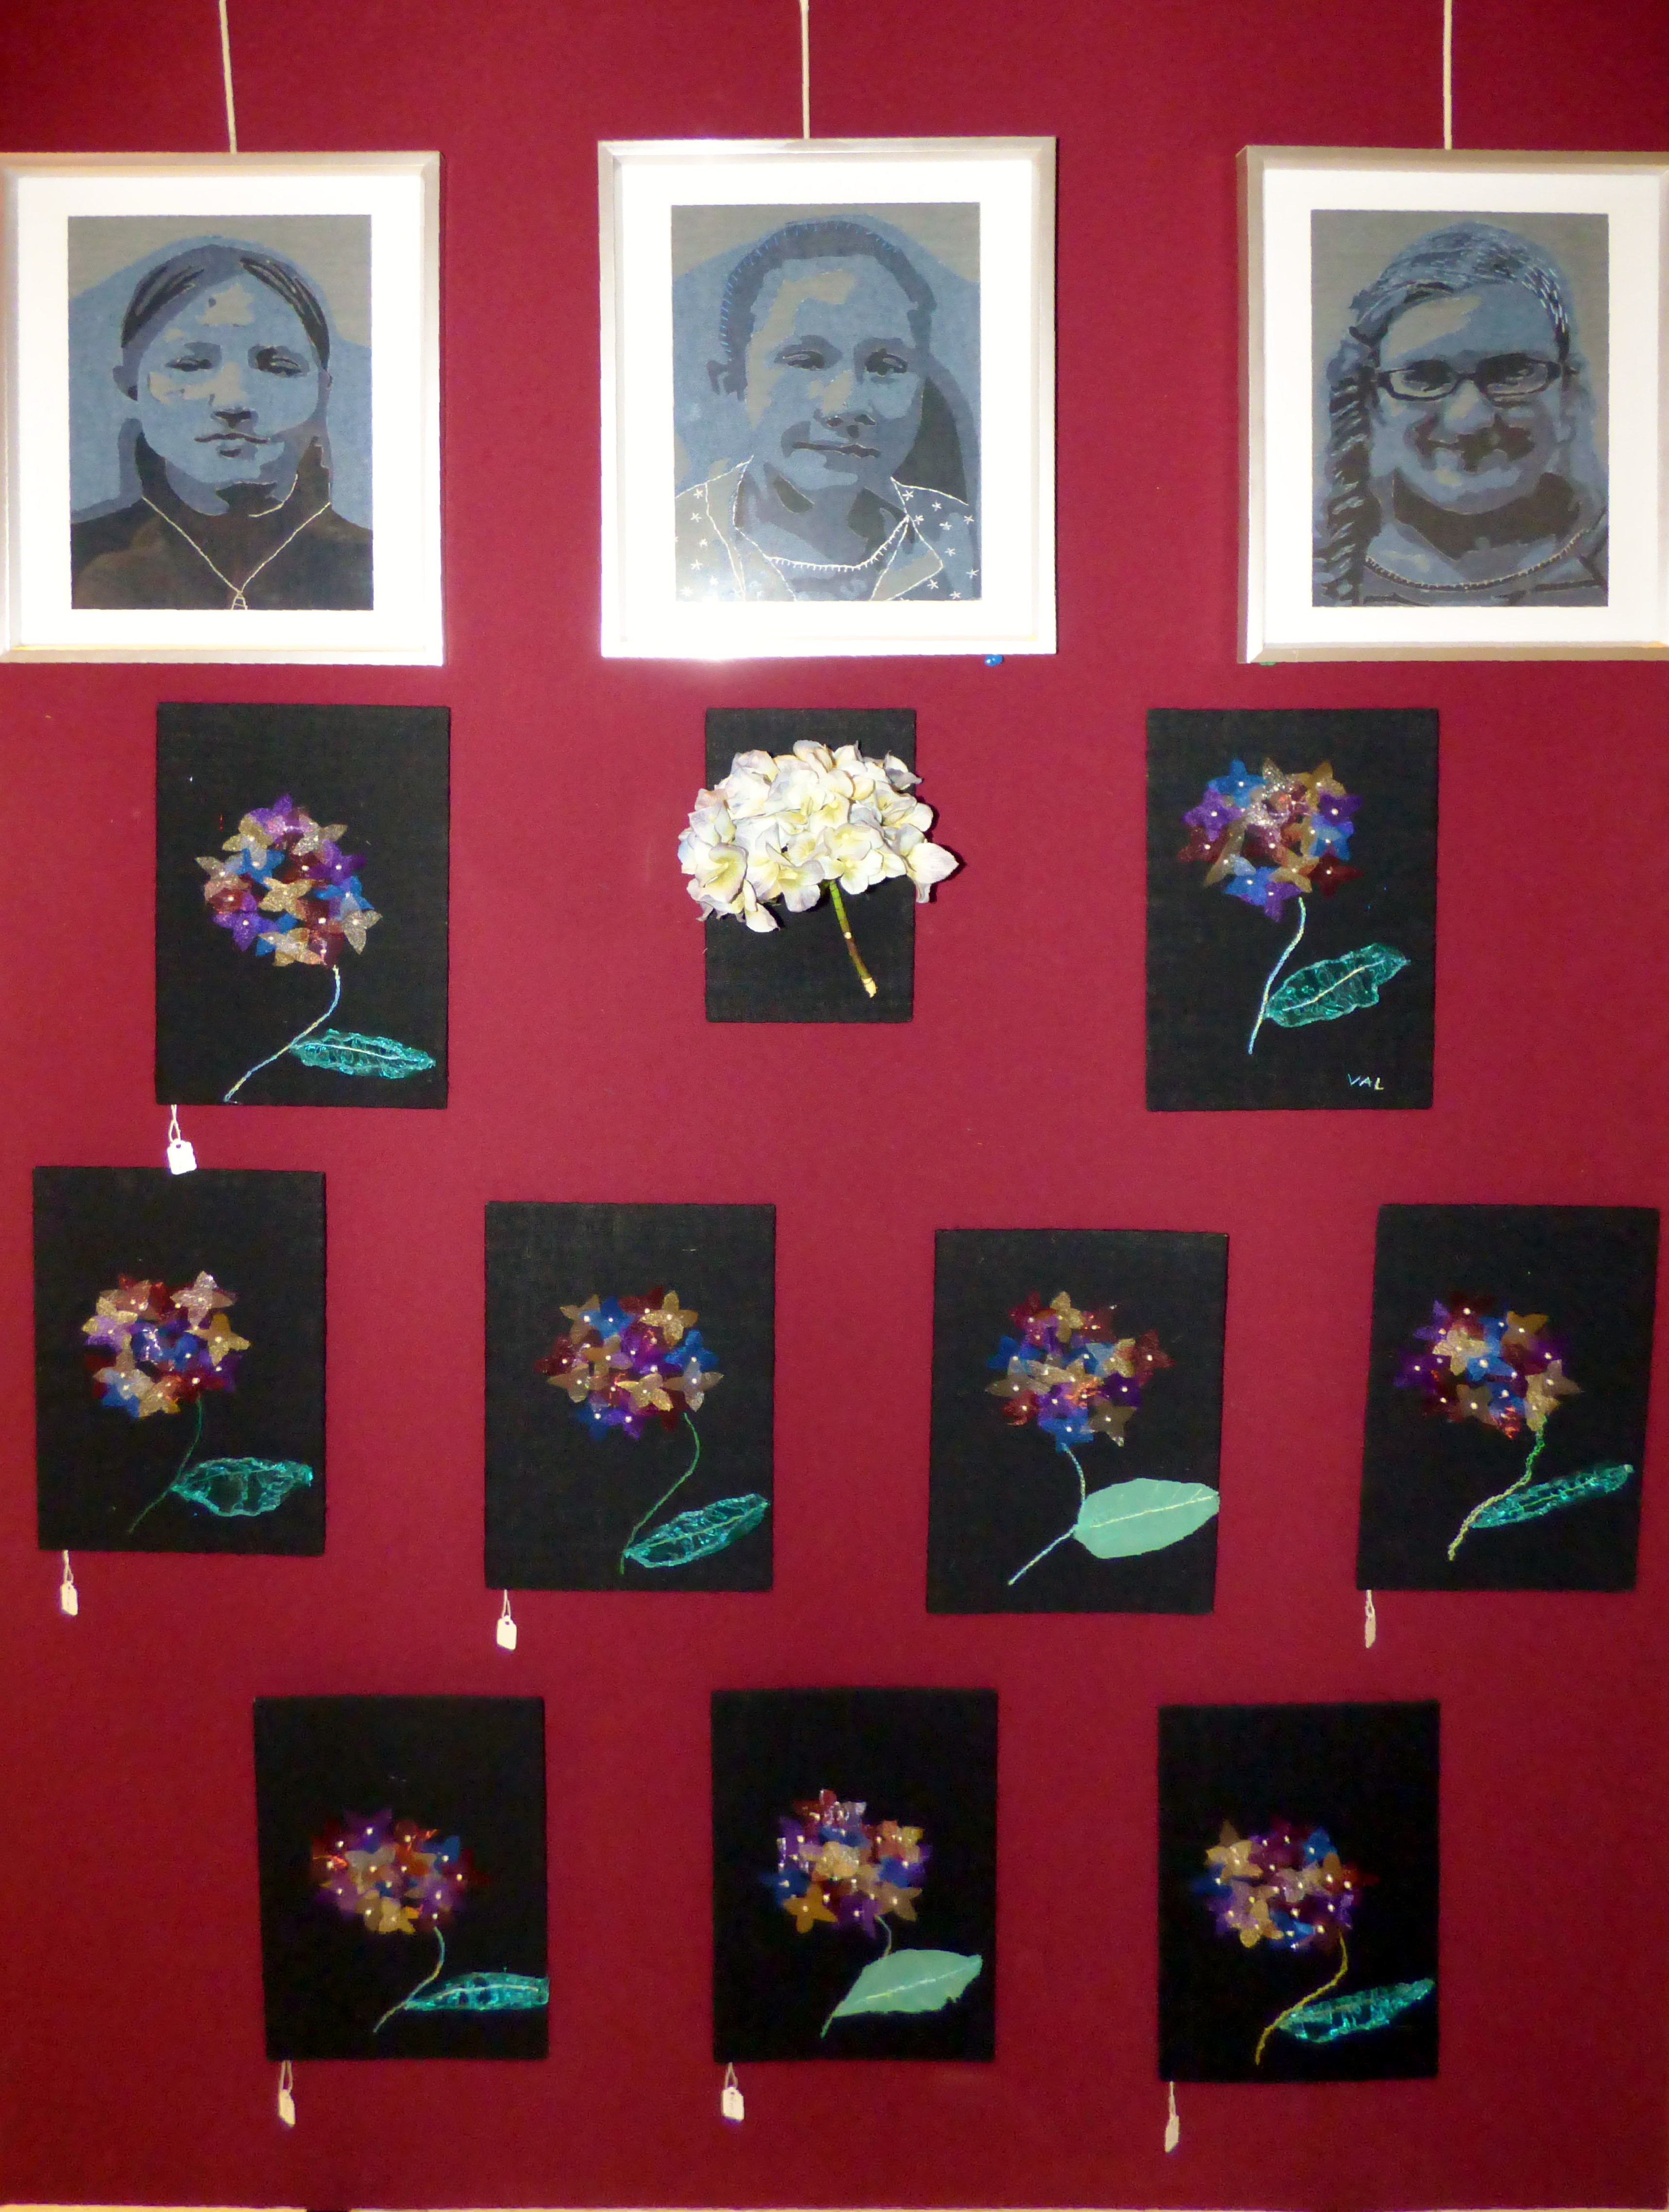 SELF PORTRAITS and HYDRANGEAS by Merseyside Young Embroiderers at 60 Glorious Years exhibition, Liverpool Anglican Cathedral 2016